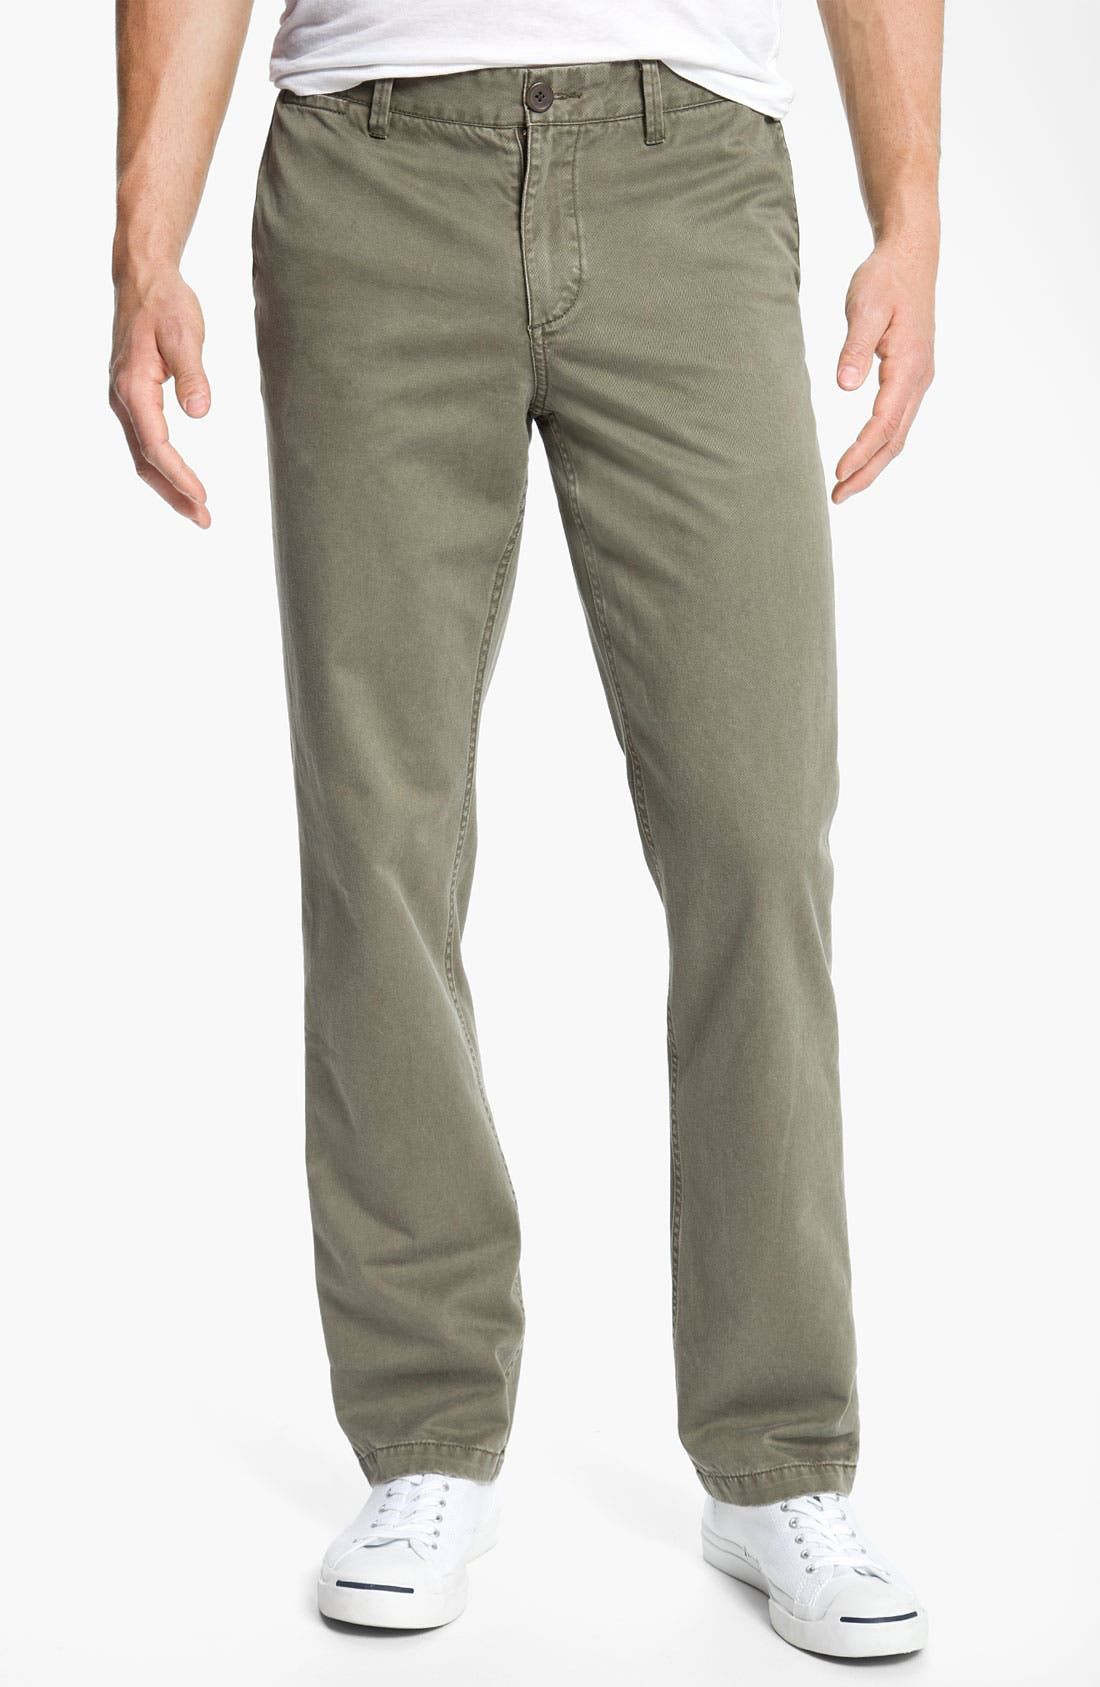 Alternate Image 1 Selected - 1901 Cotton Twill Straight Leg Chinos